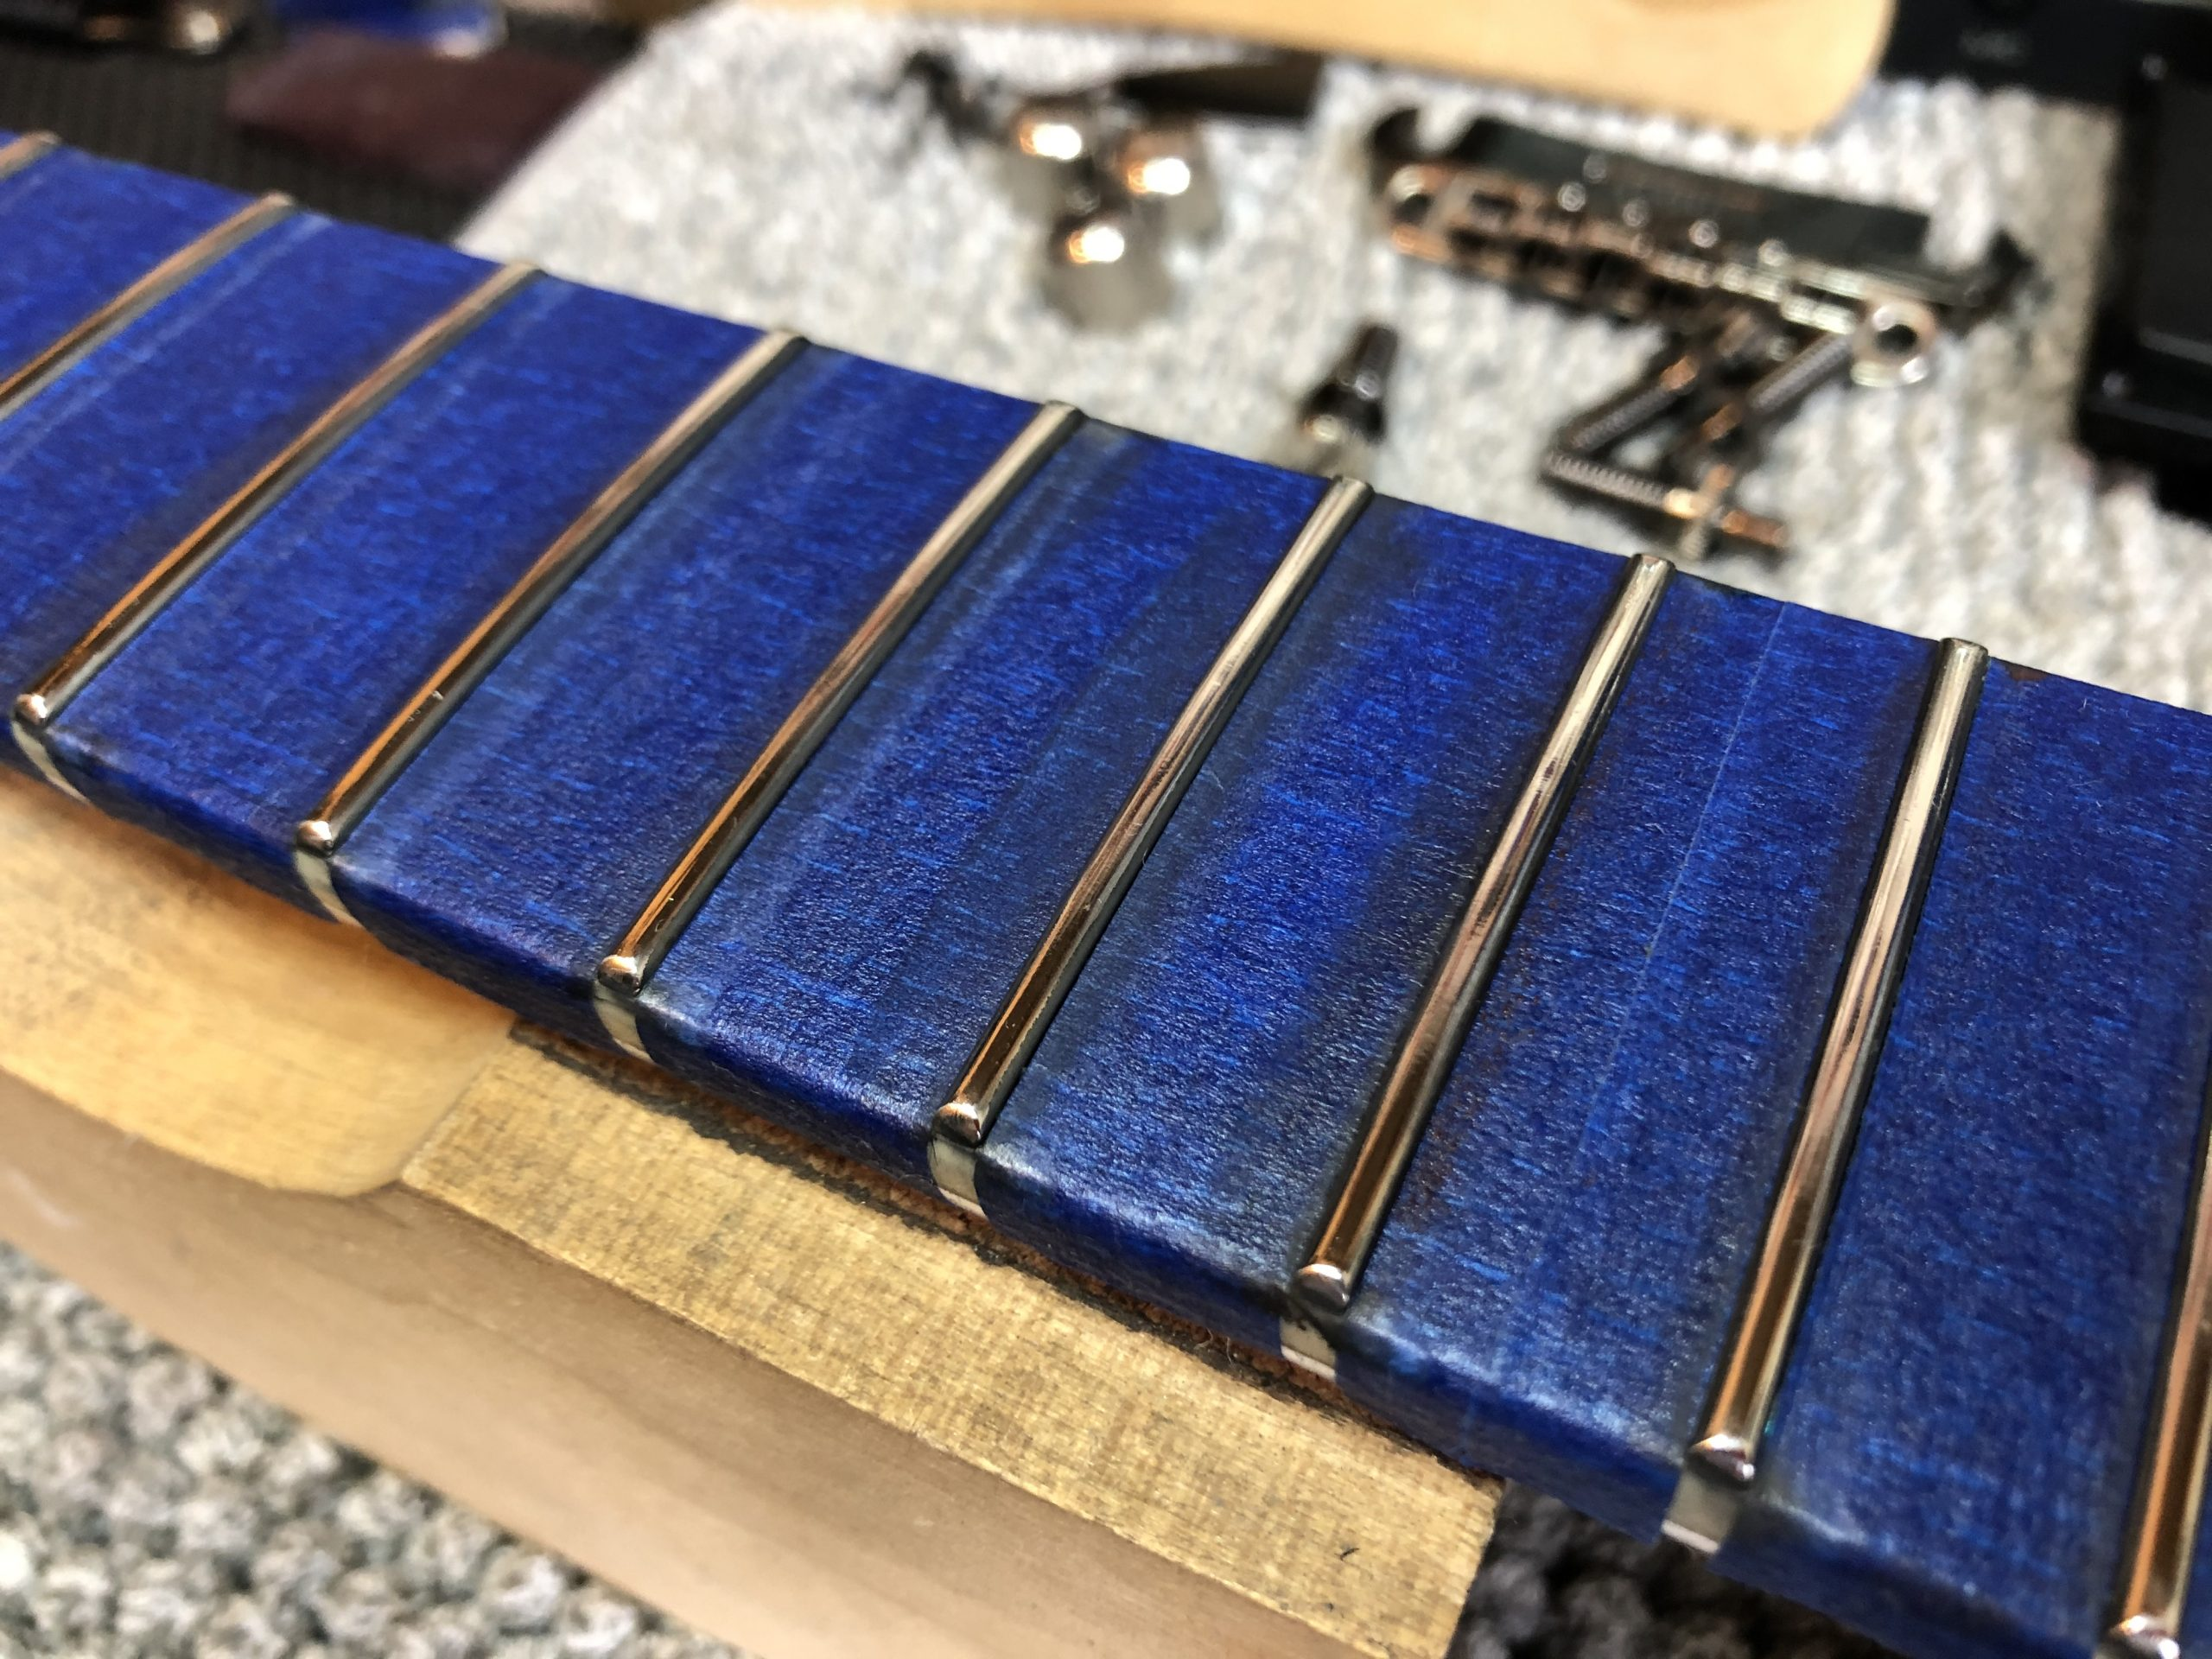 Polished frets